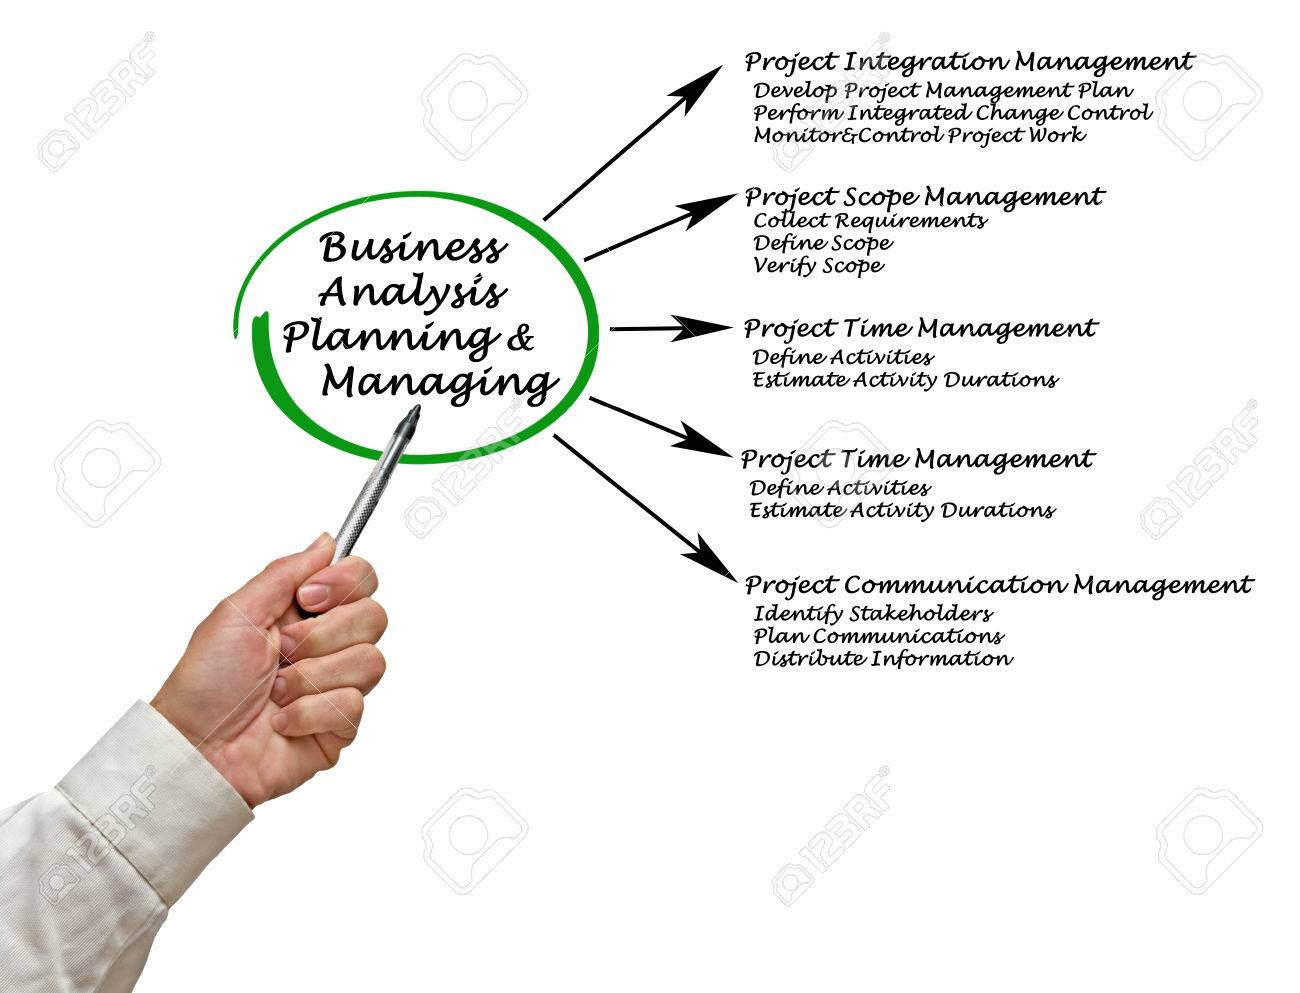 Business analysis planning